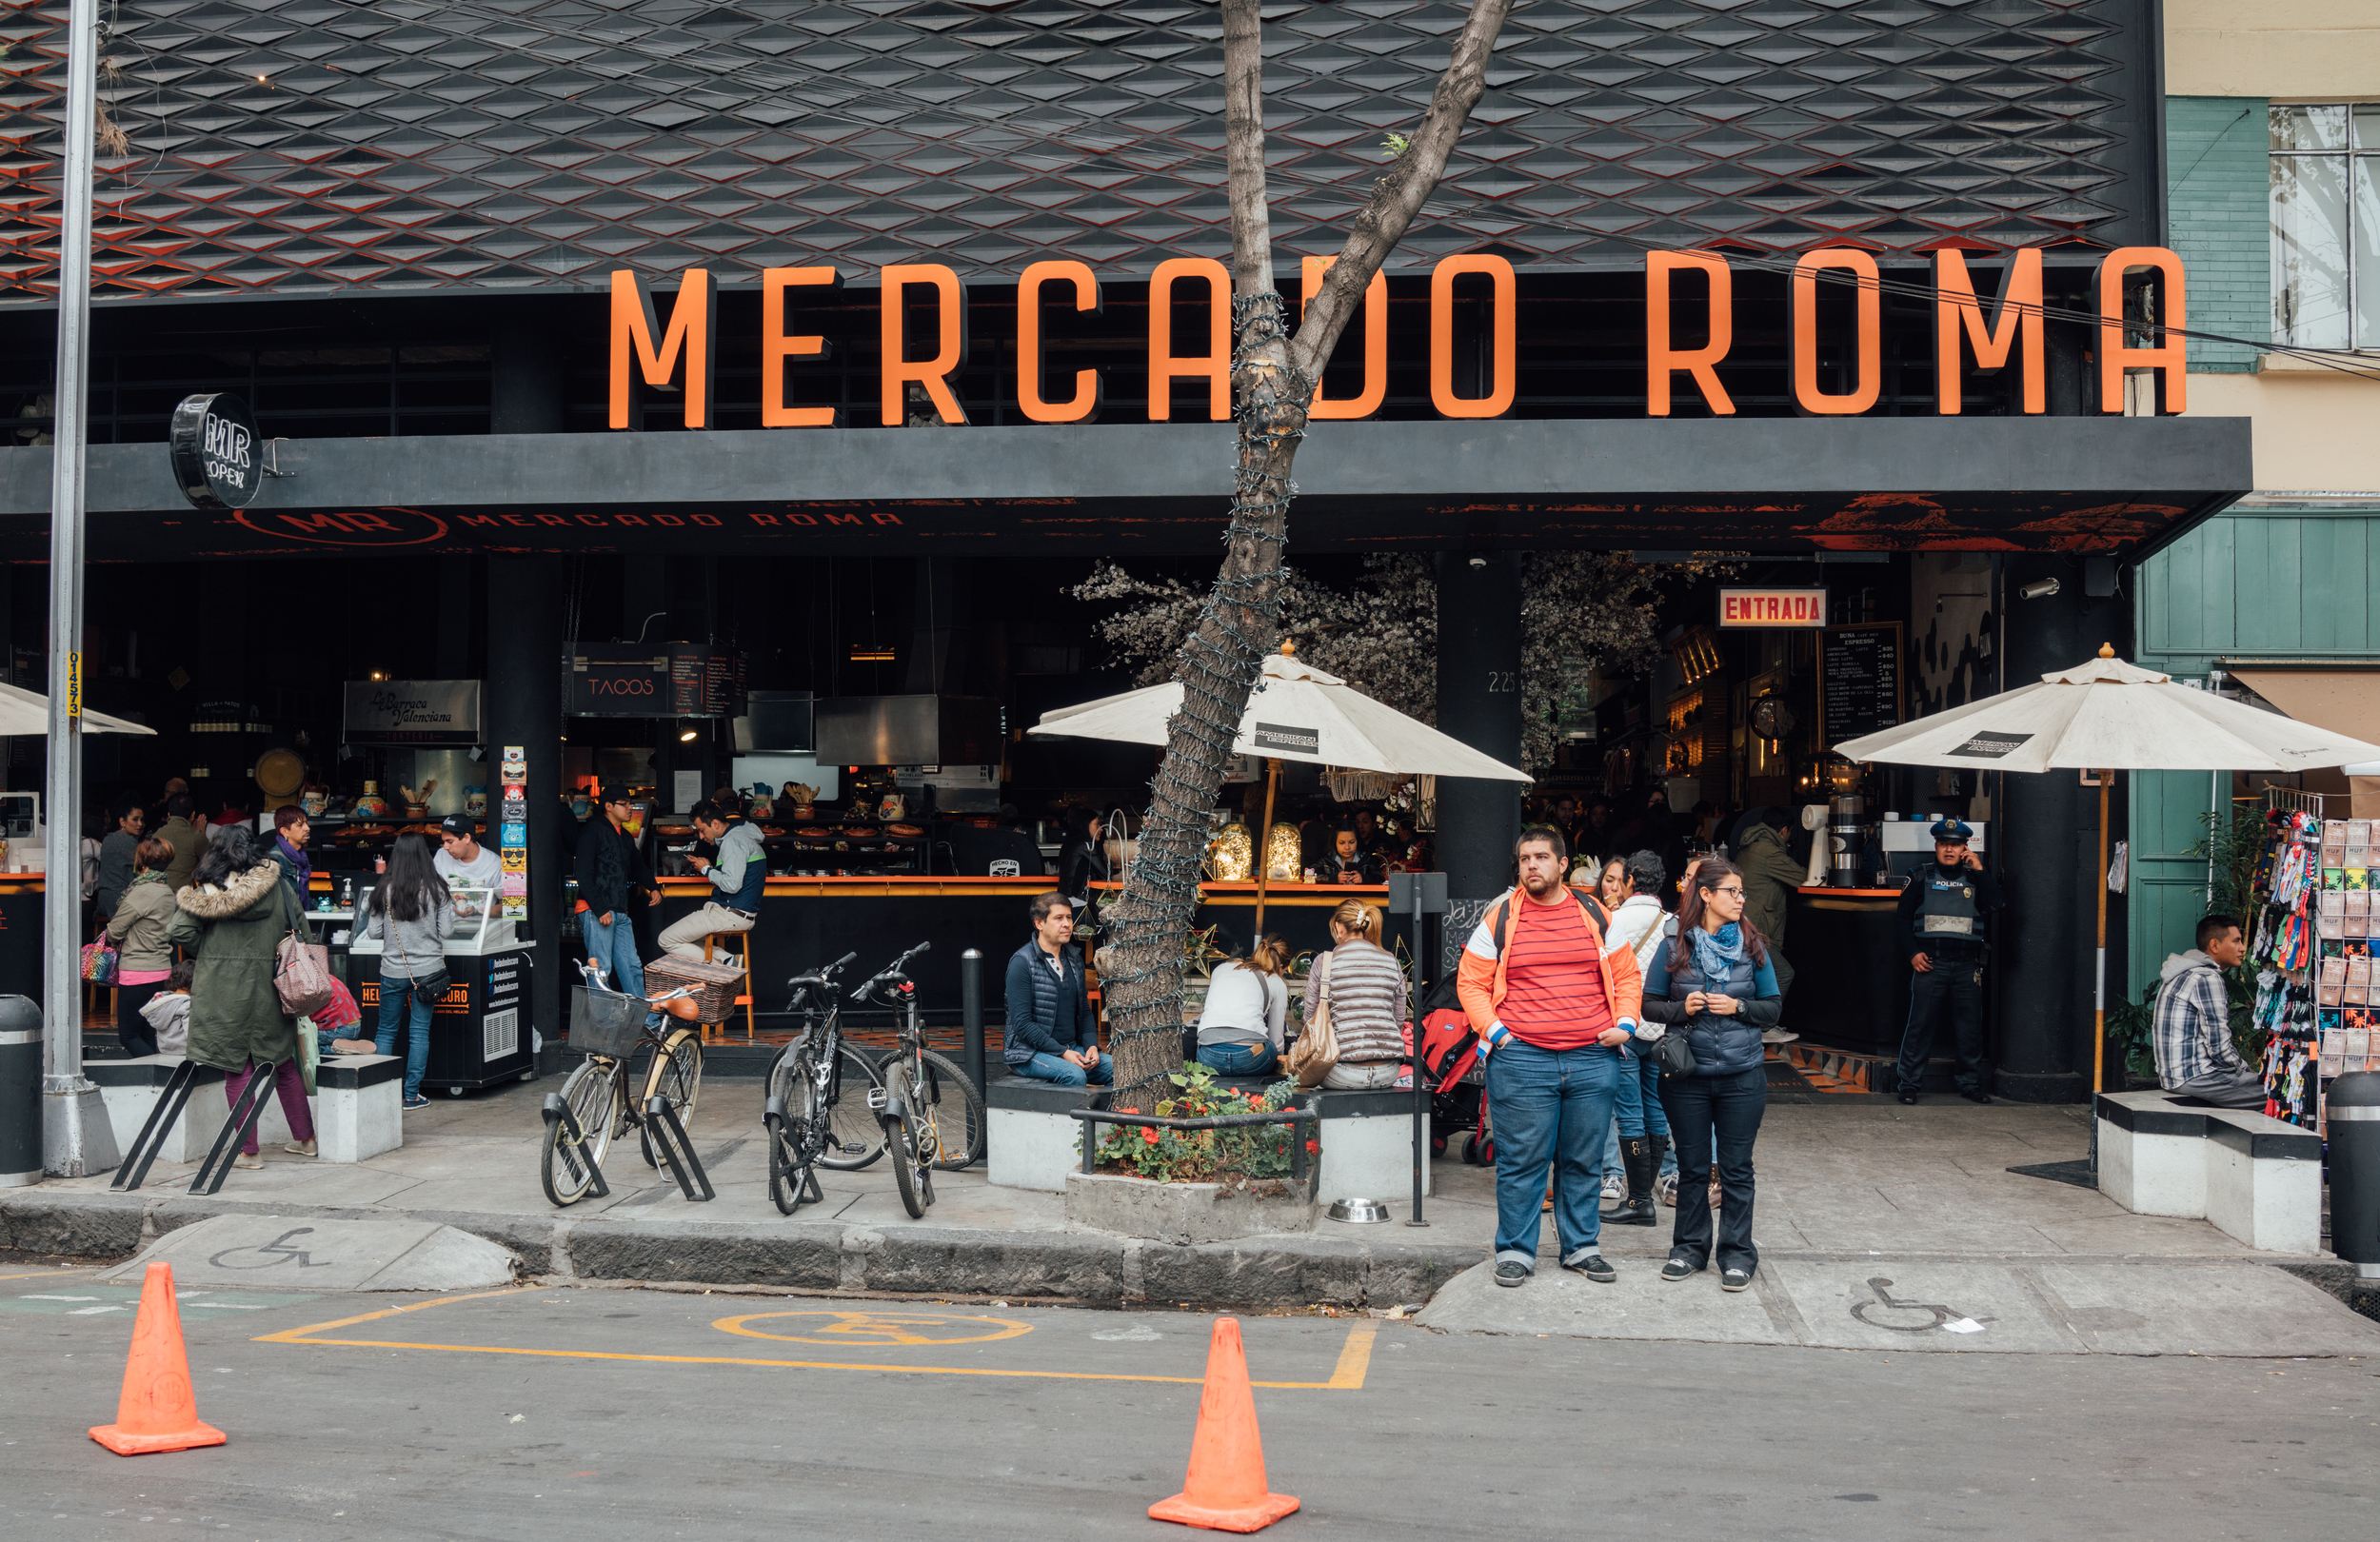 We got mixed reactions upon hearing we visited Mexico City as many people worry that it's dangerous, and while this post doesn't even begin to do the city justice, it's a peek into the wonderful things it has to offer tourists